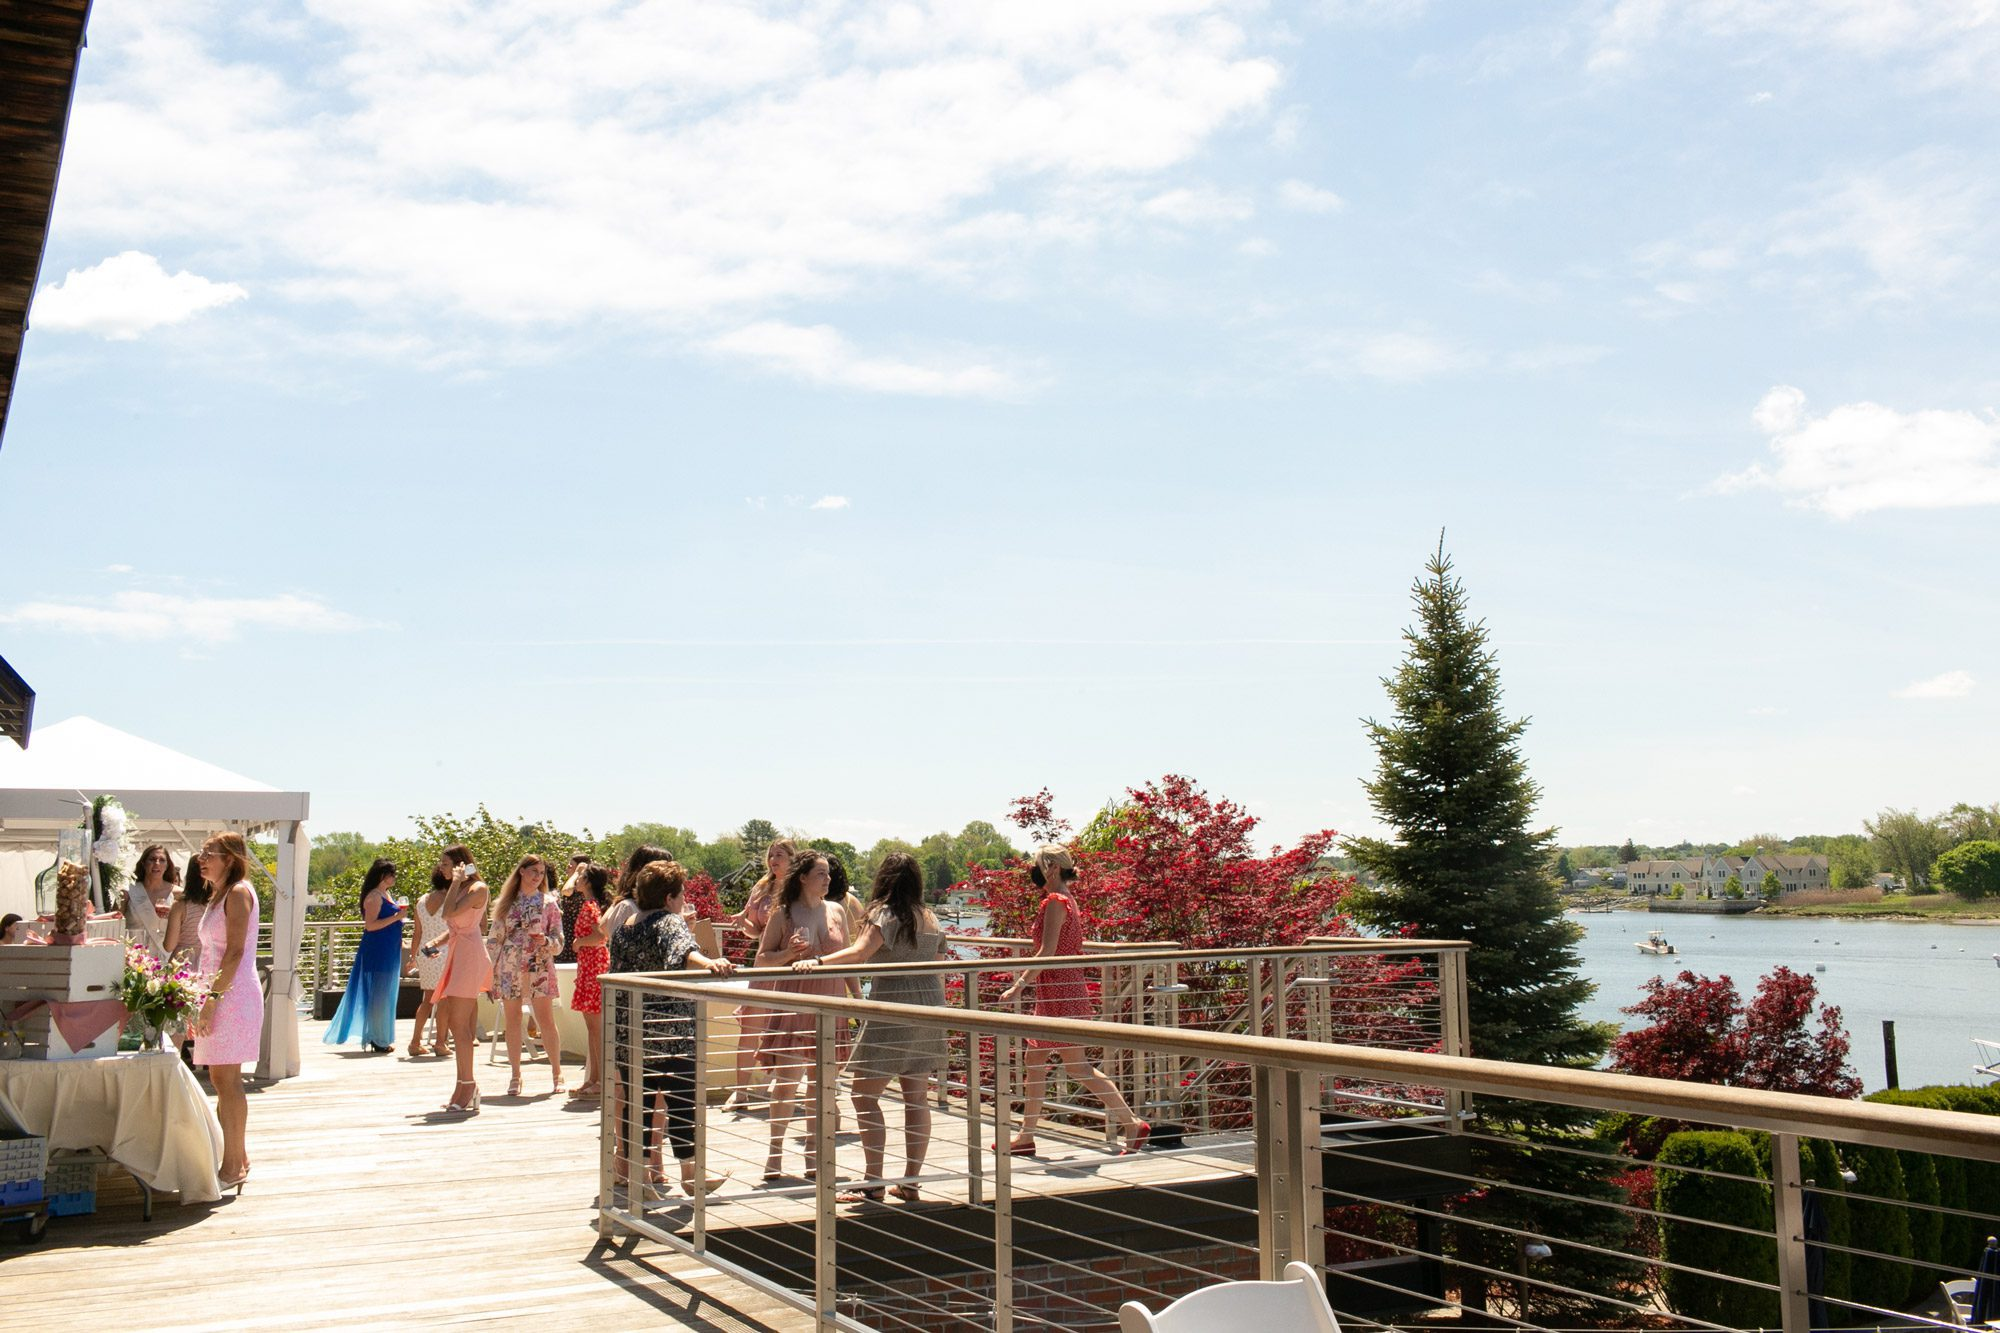 The deck attached to the Harborview Ballroom at Danversport Marina in Danvers, Massachusetts